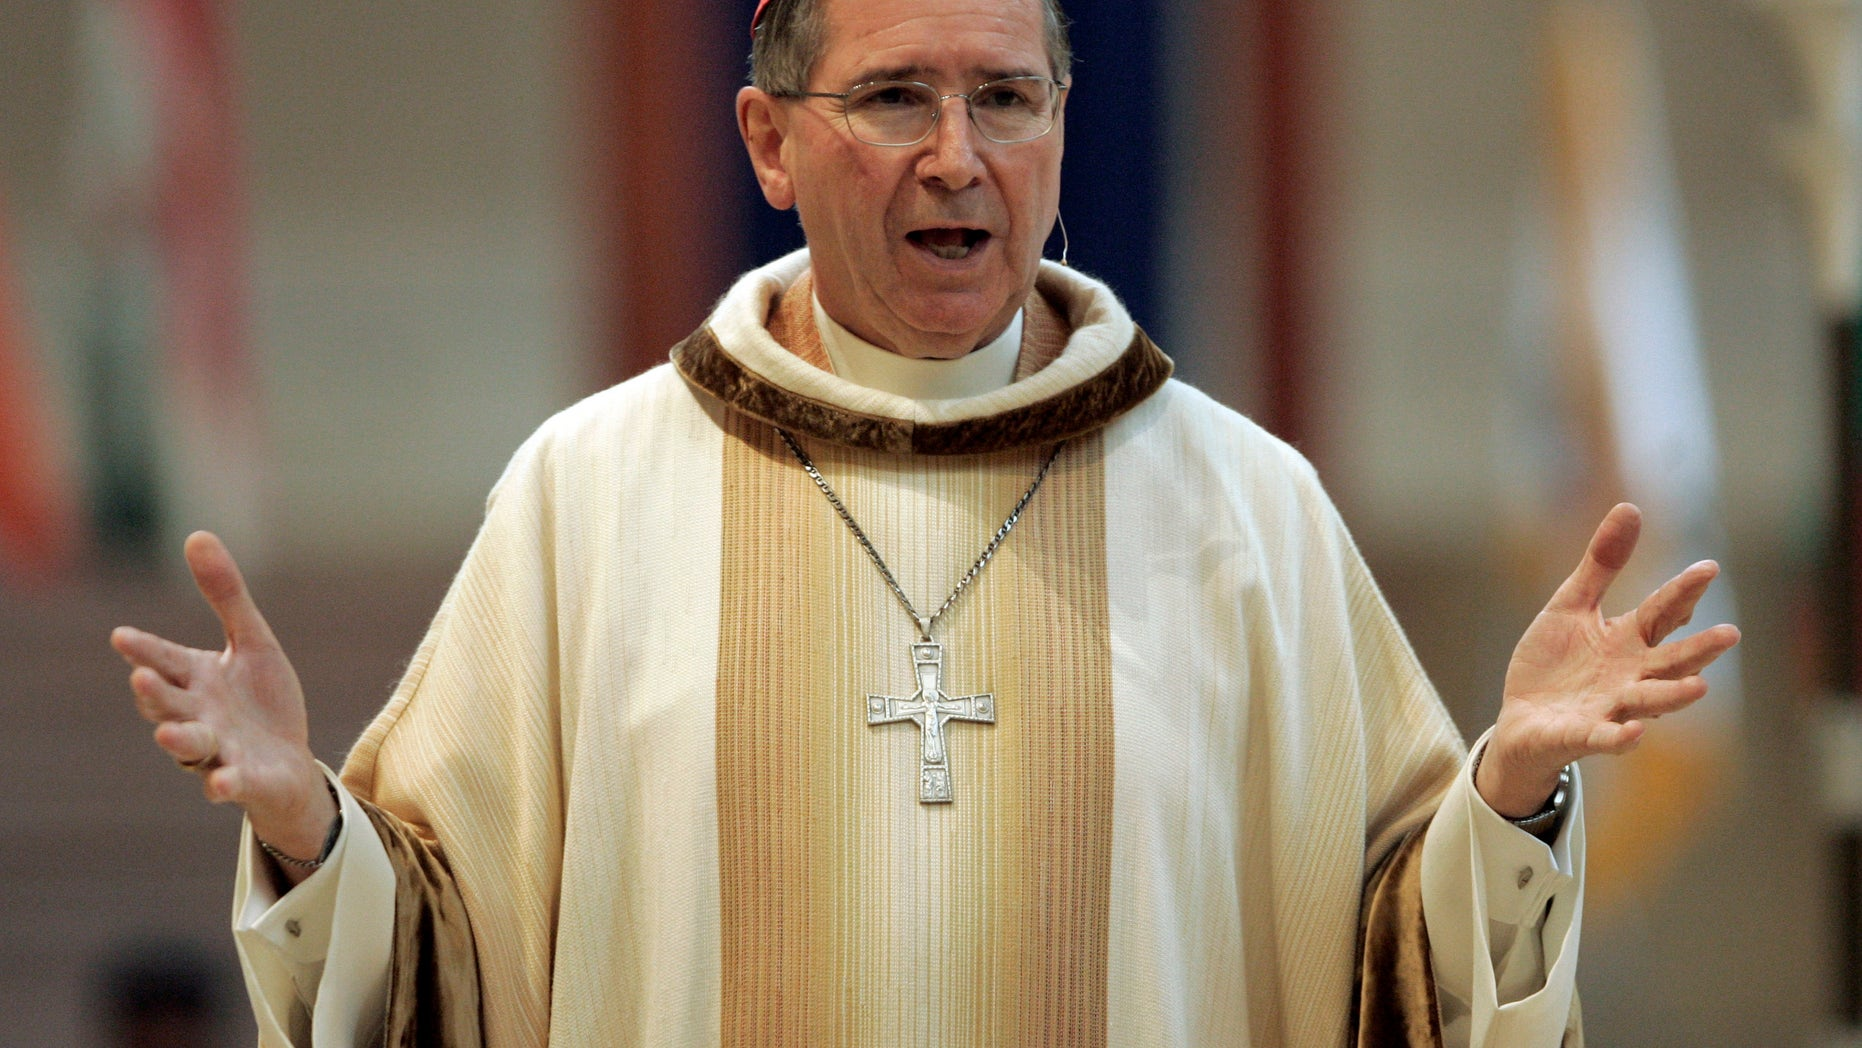 Sept. 22, 2007: In this file photo, Cardinal Roger Mahony speaks during an annual multi-ethnic migration Mass at the Cathedral of Our Lady of the Angels in Los Angeles.